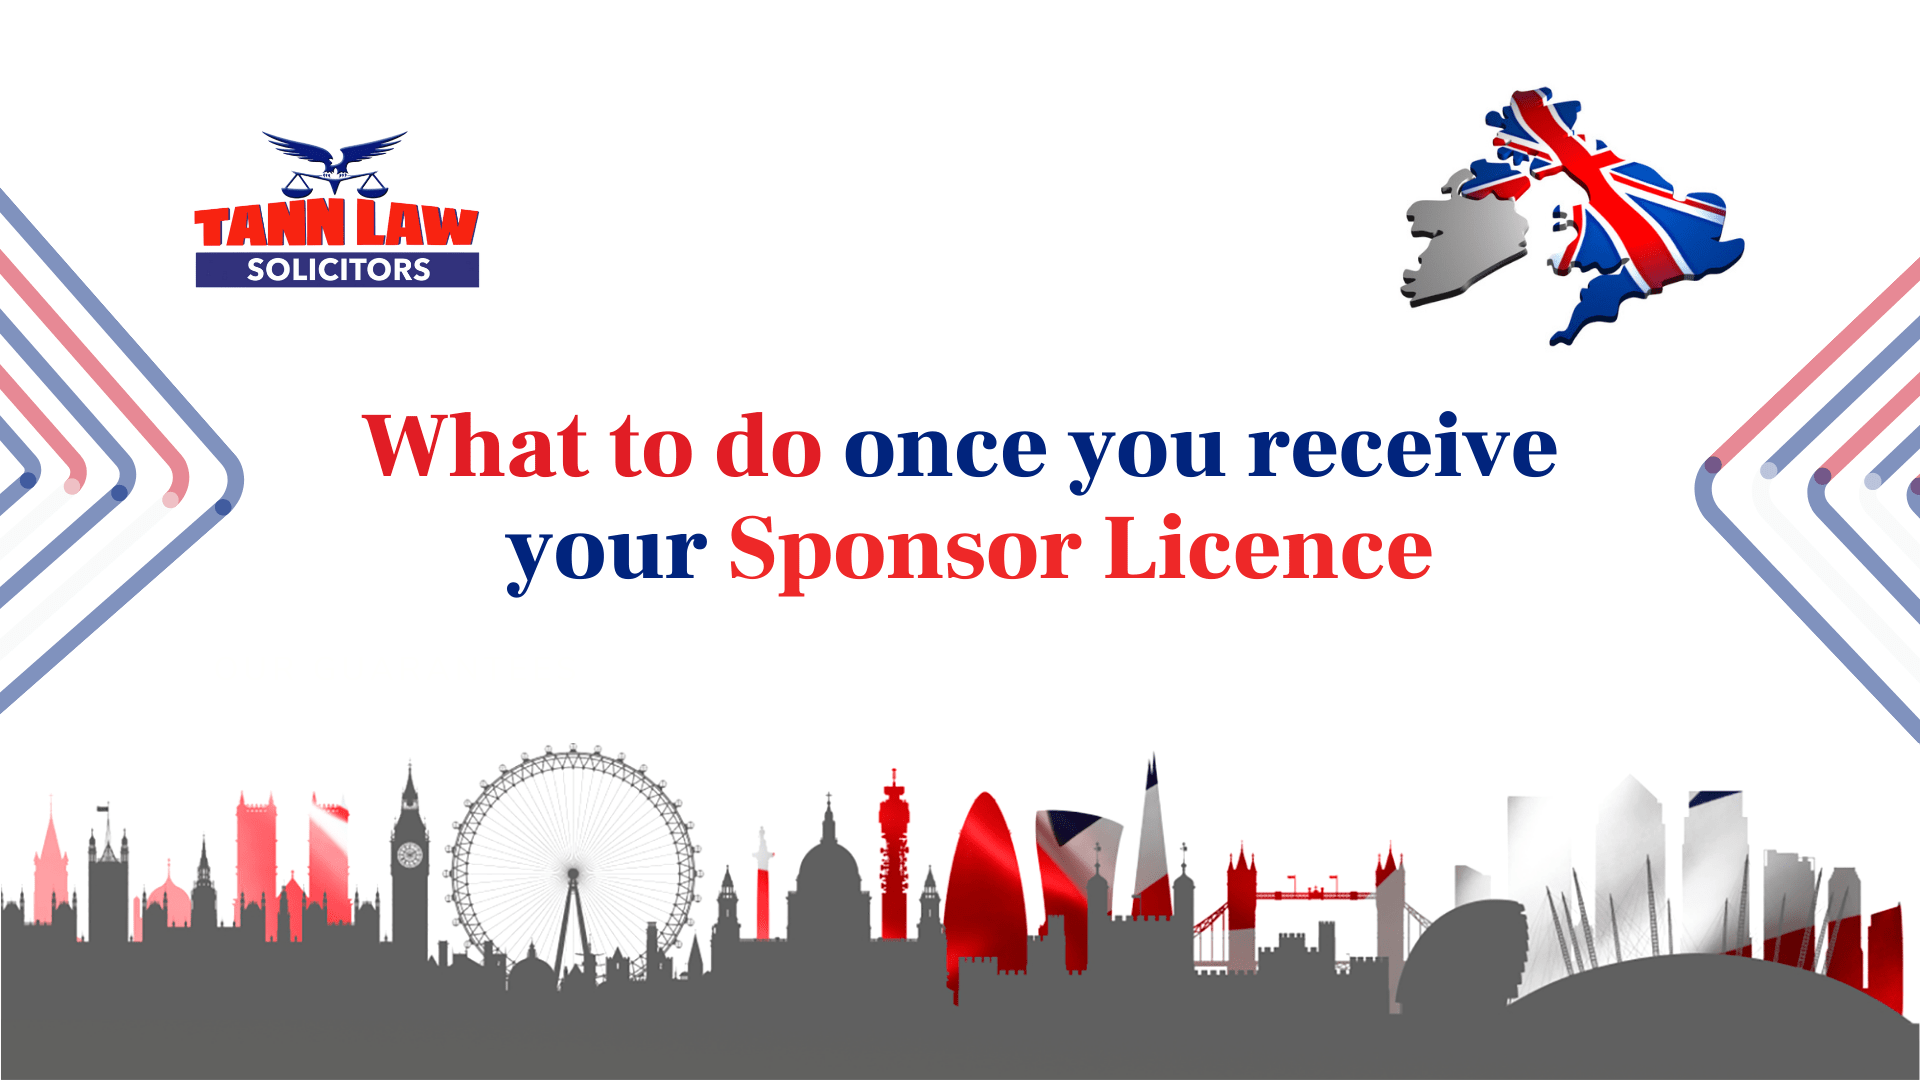 What to do once you receive your sponsor licence